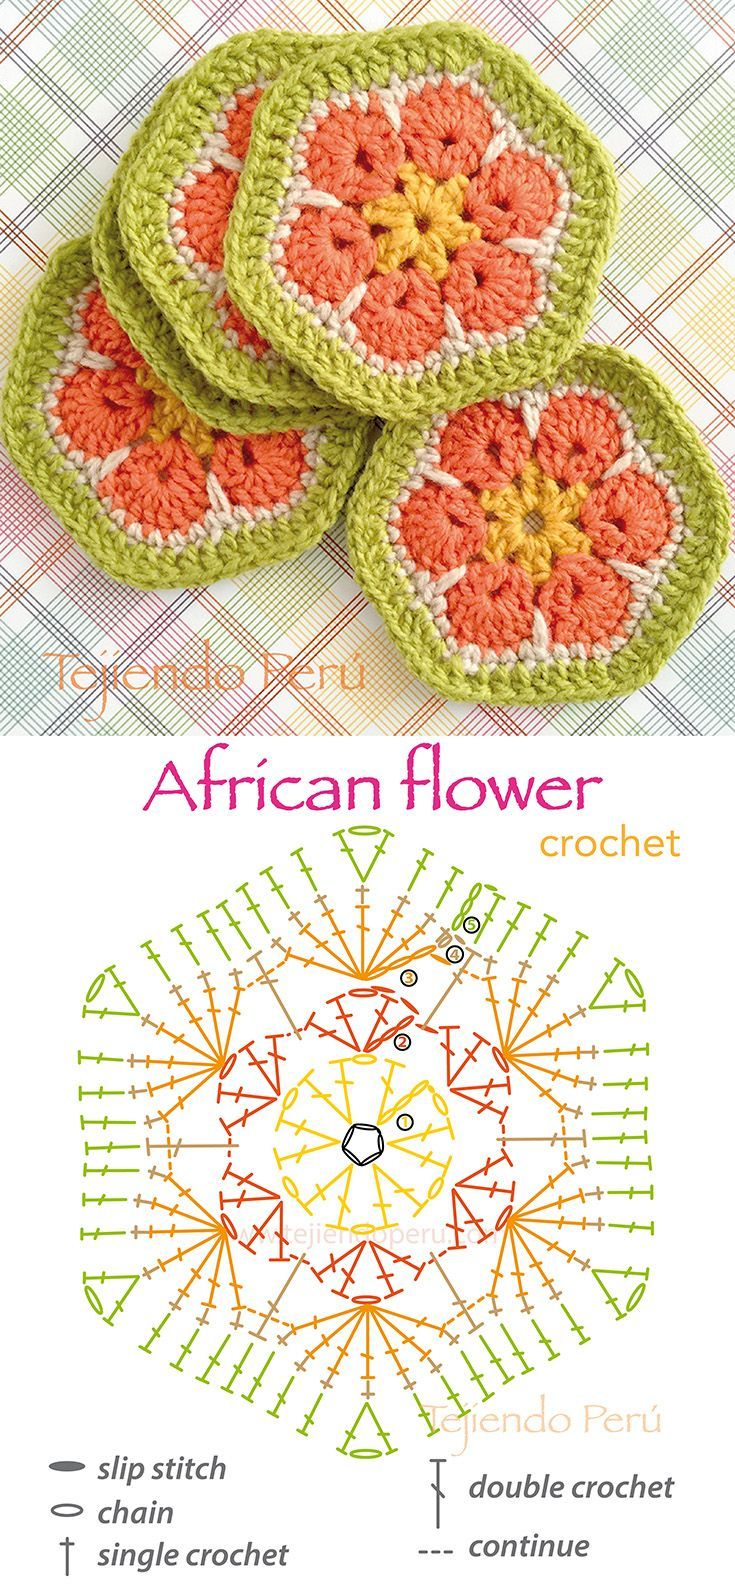 Crochet african flower pattern (chart or diagram)!: